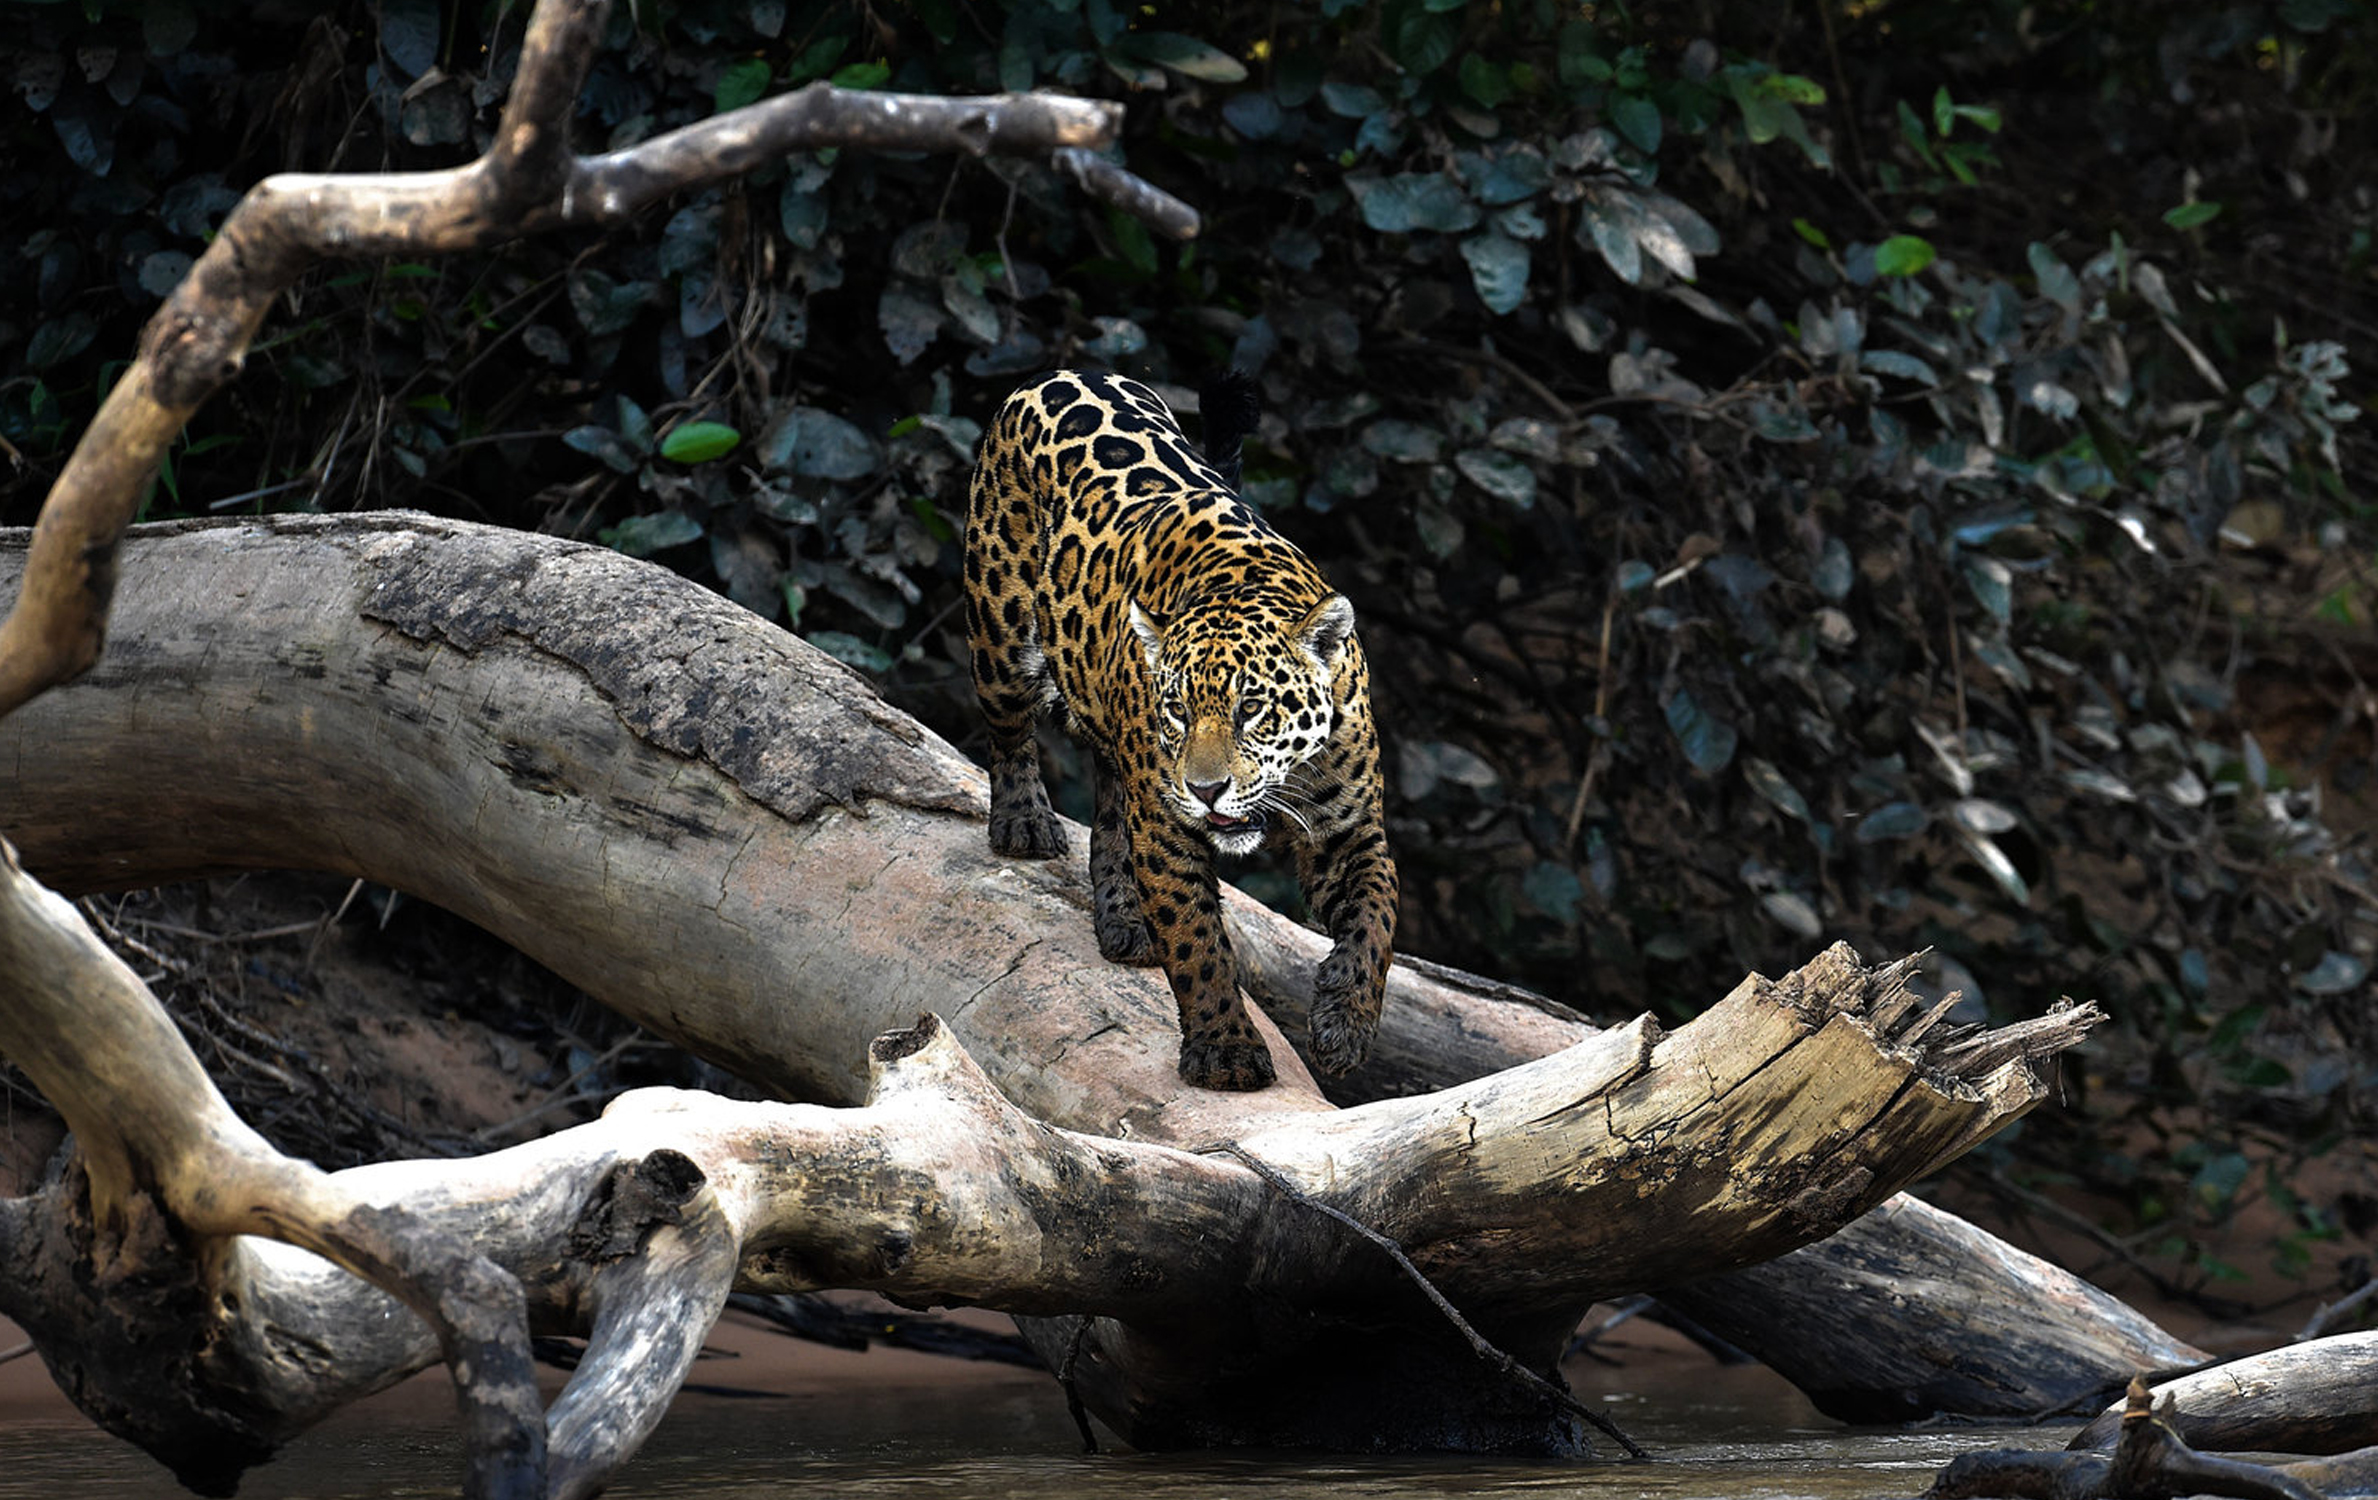 The Melting Pot  - Wildlife captured on safari in the remote regions of South America